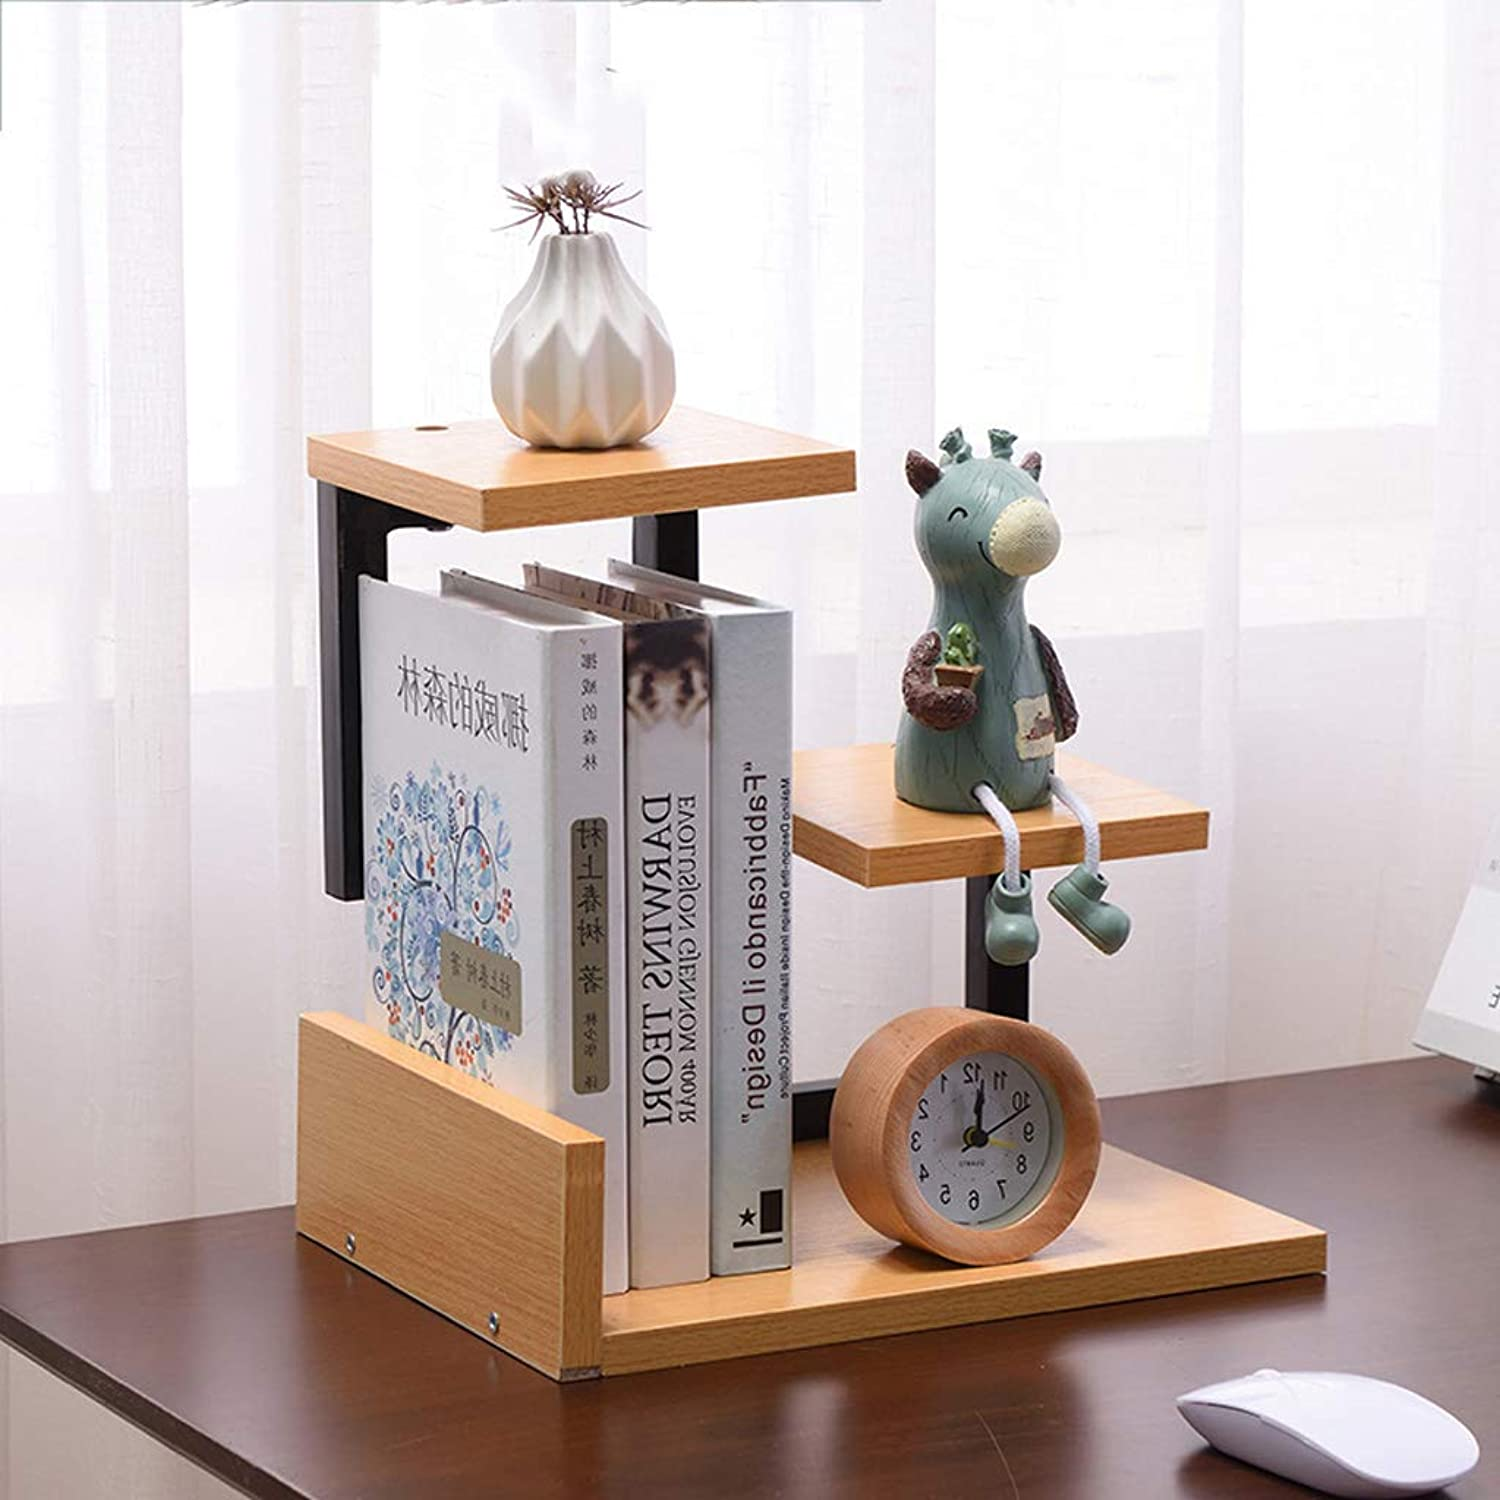 YAXIAO Desktop Bookshelf Simple Books Sundries Storage Rack Decorative Frame 30x23.5x31cm Bookshelf (color   B)